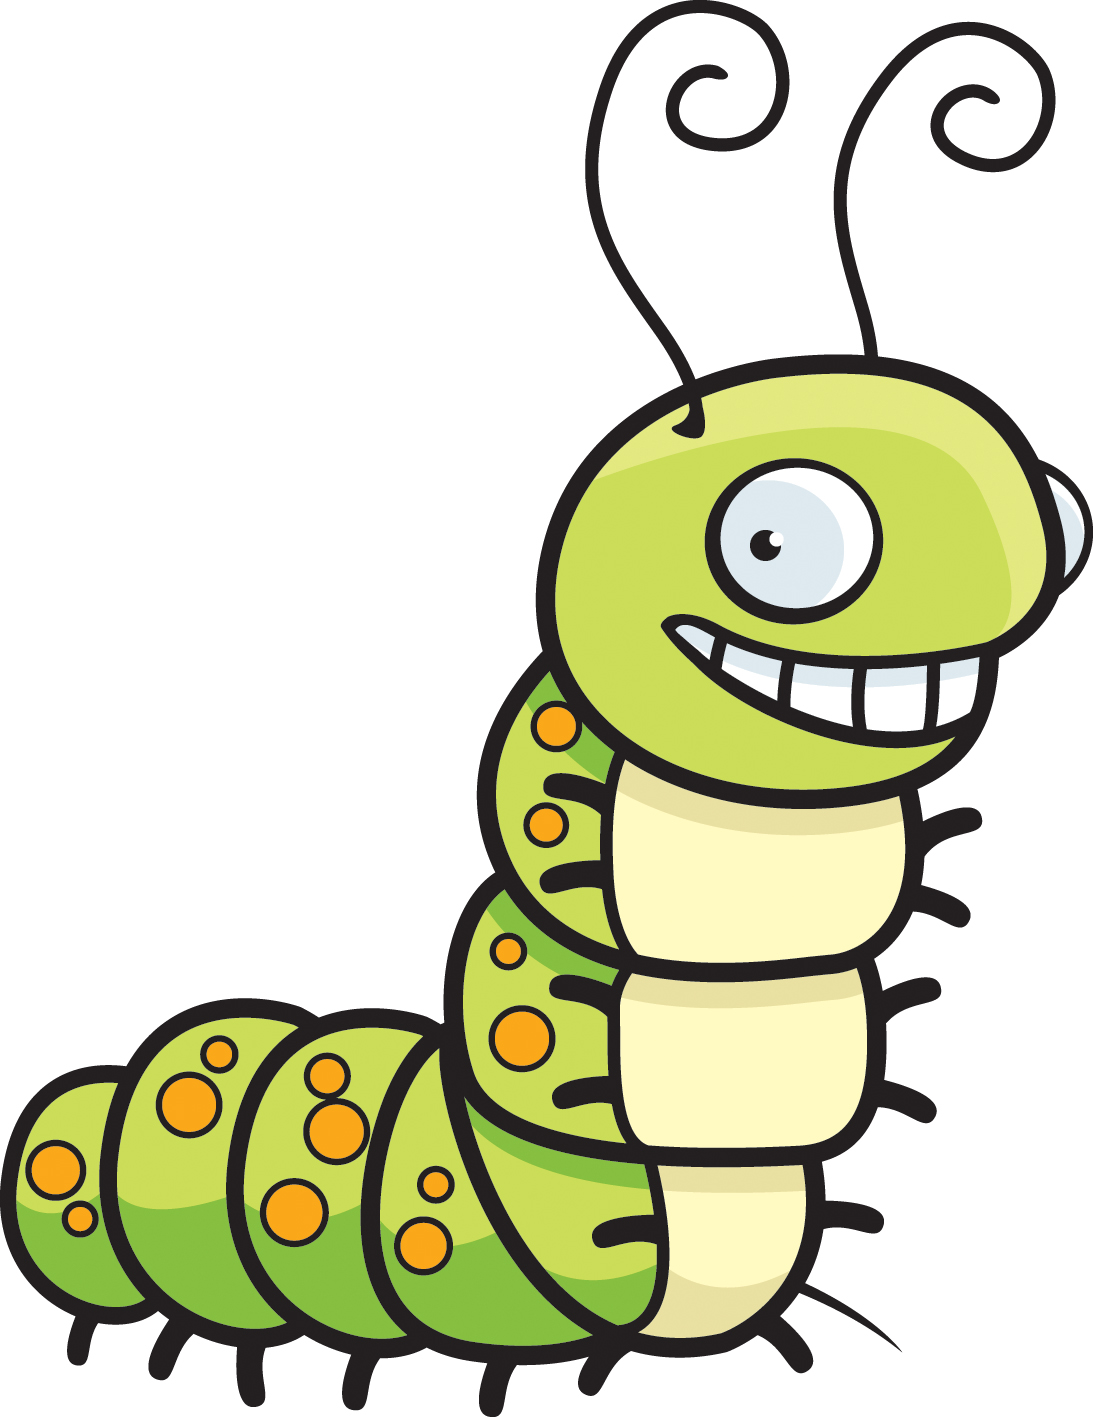 Caterpillar Clipart-Caterpillar Clipart-2